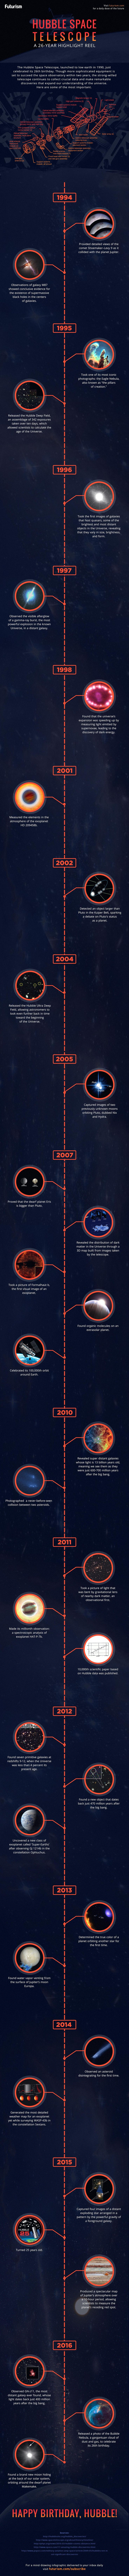 Hubble Space Telescope: The Highlight Reel — 26 years after its orbital debut, Hubble is still making headlines. Here are some of its most important discoveries, from supermassive black holes to dark matter. — https://futurism.com/images/hubble-space-telescope-highlight-reel/